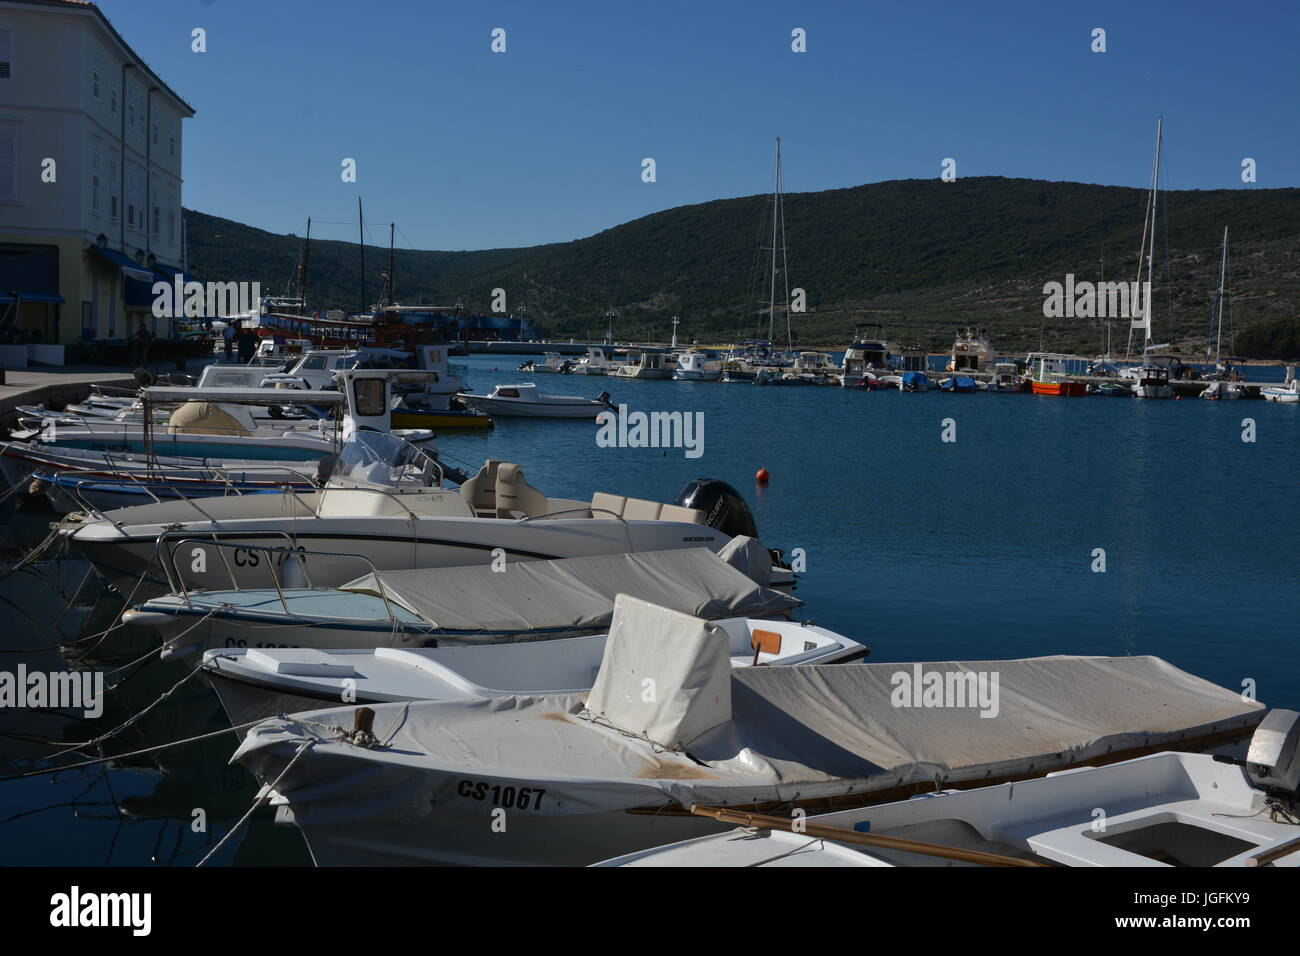 Cres, Croatia - June 18, 2017 - City of cres with boats and blue sky Stock Photo